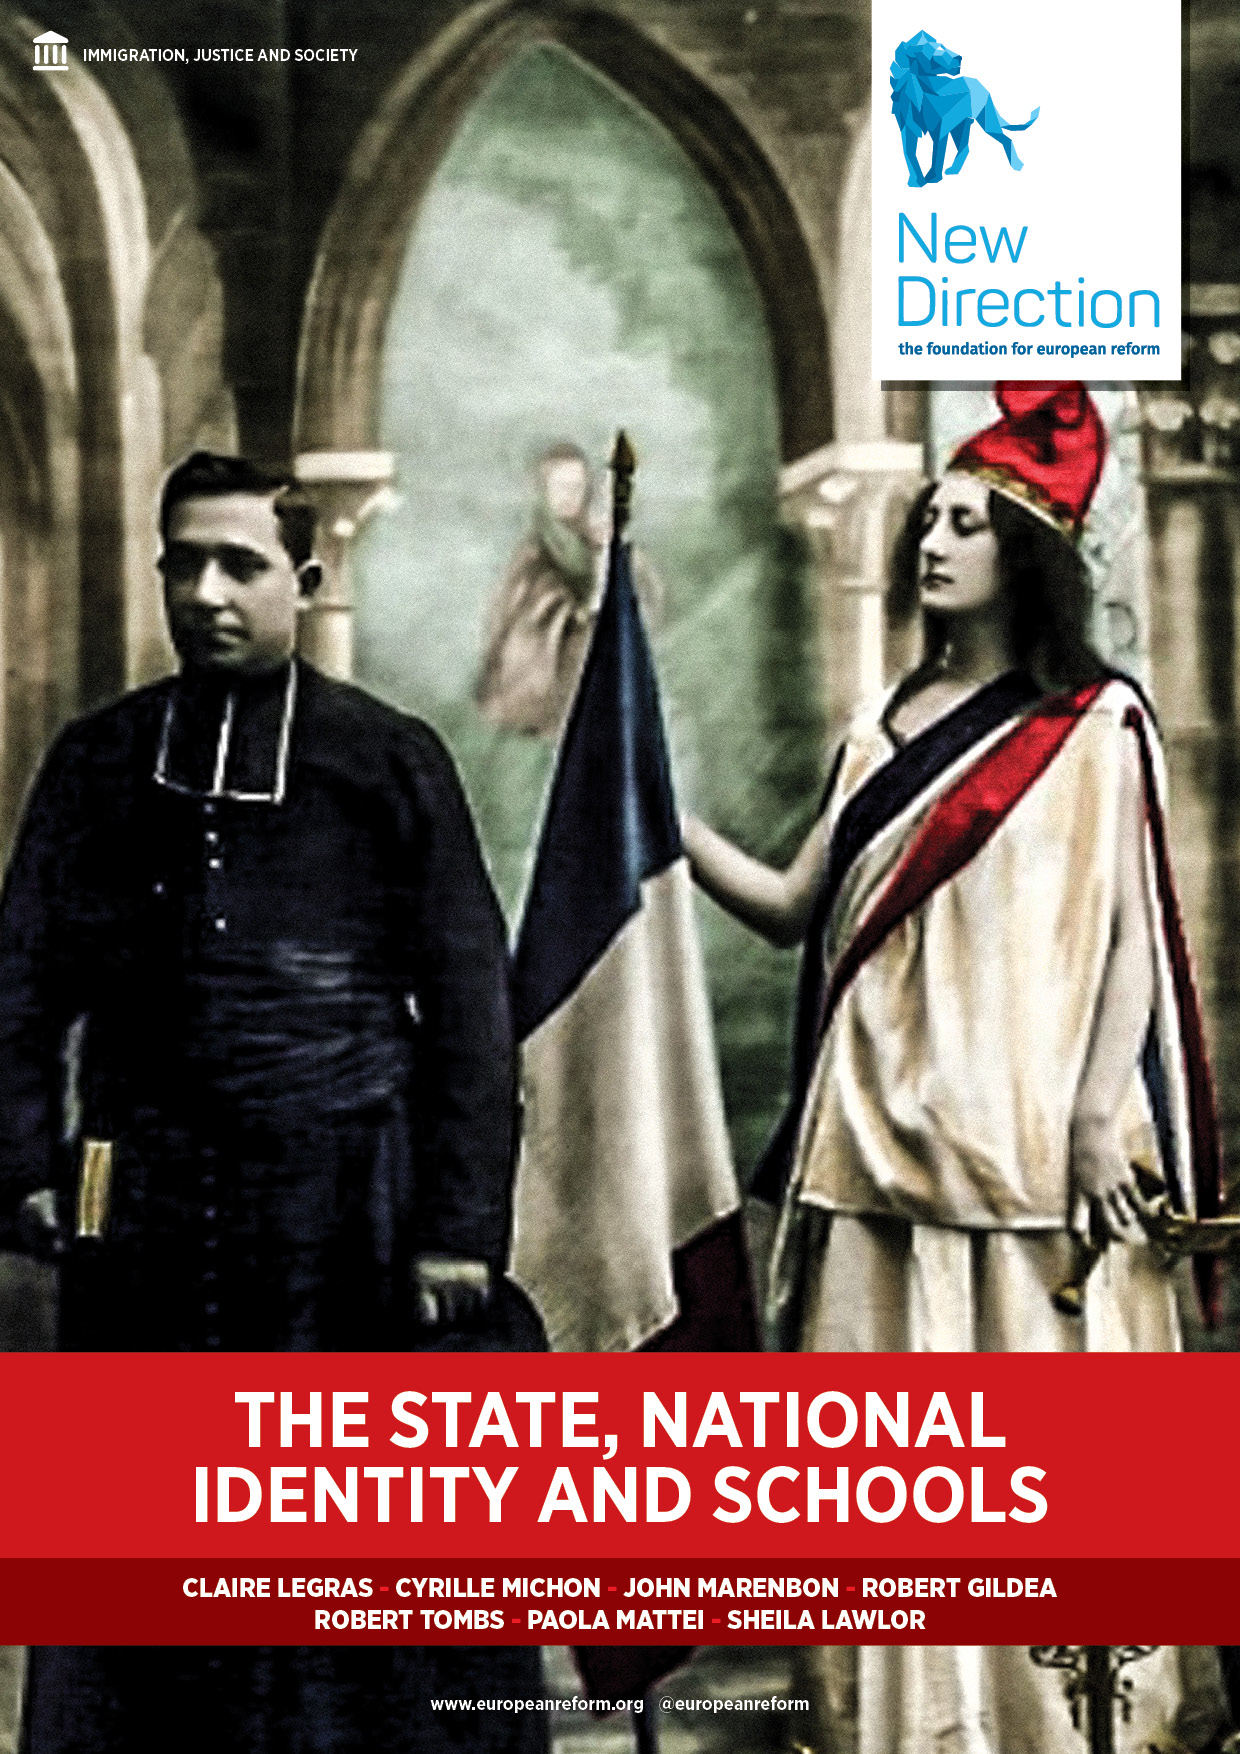 The State, National Identity and Schools